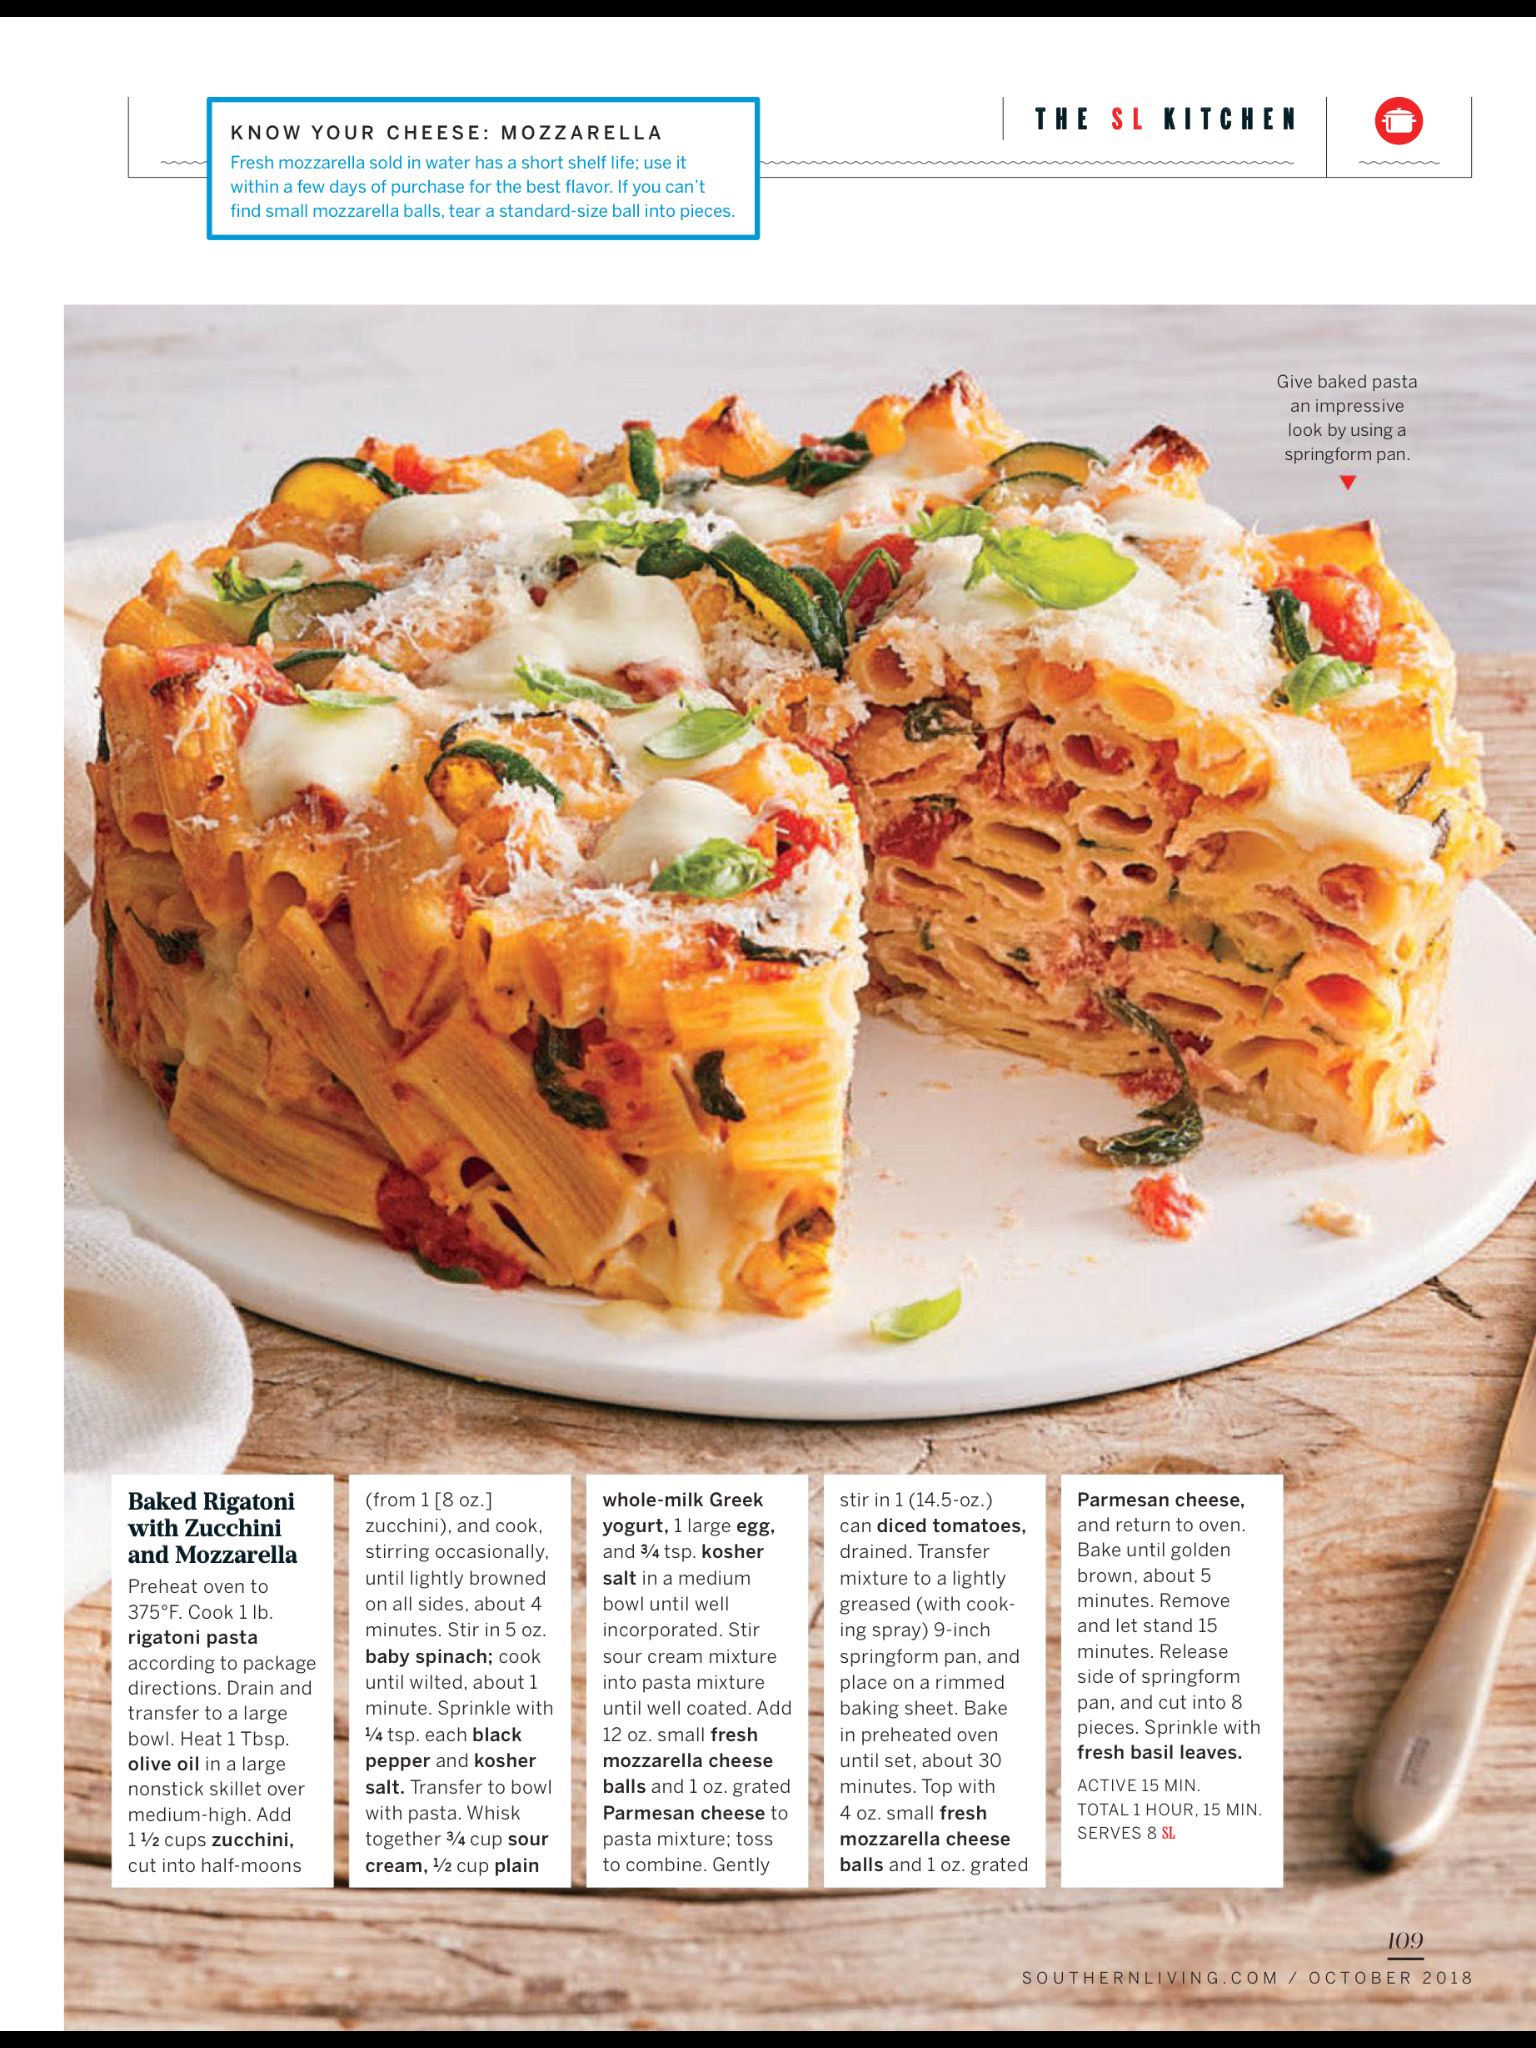 More Cheese Please From Southern Living October 2018 Read It On